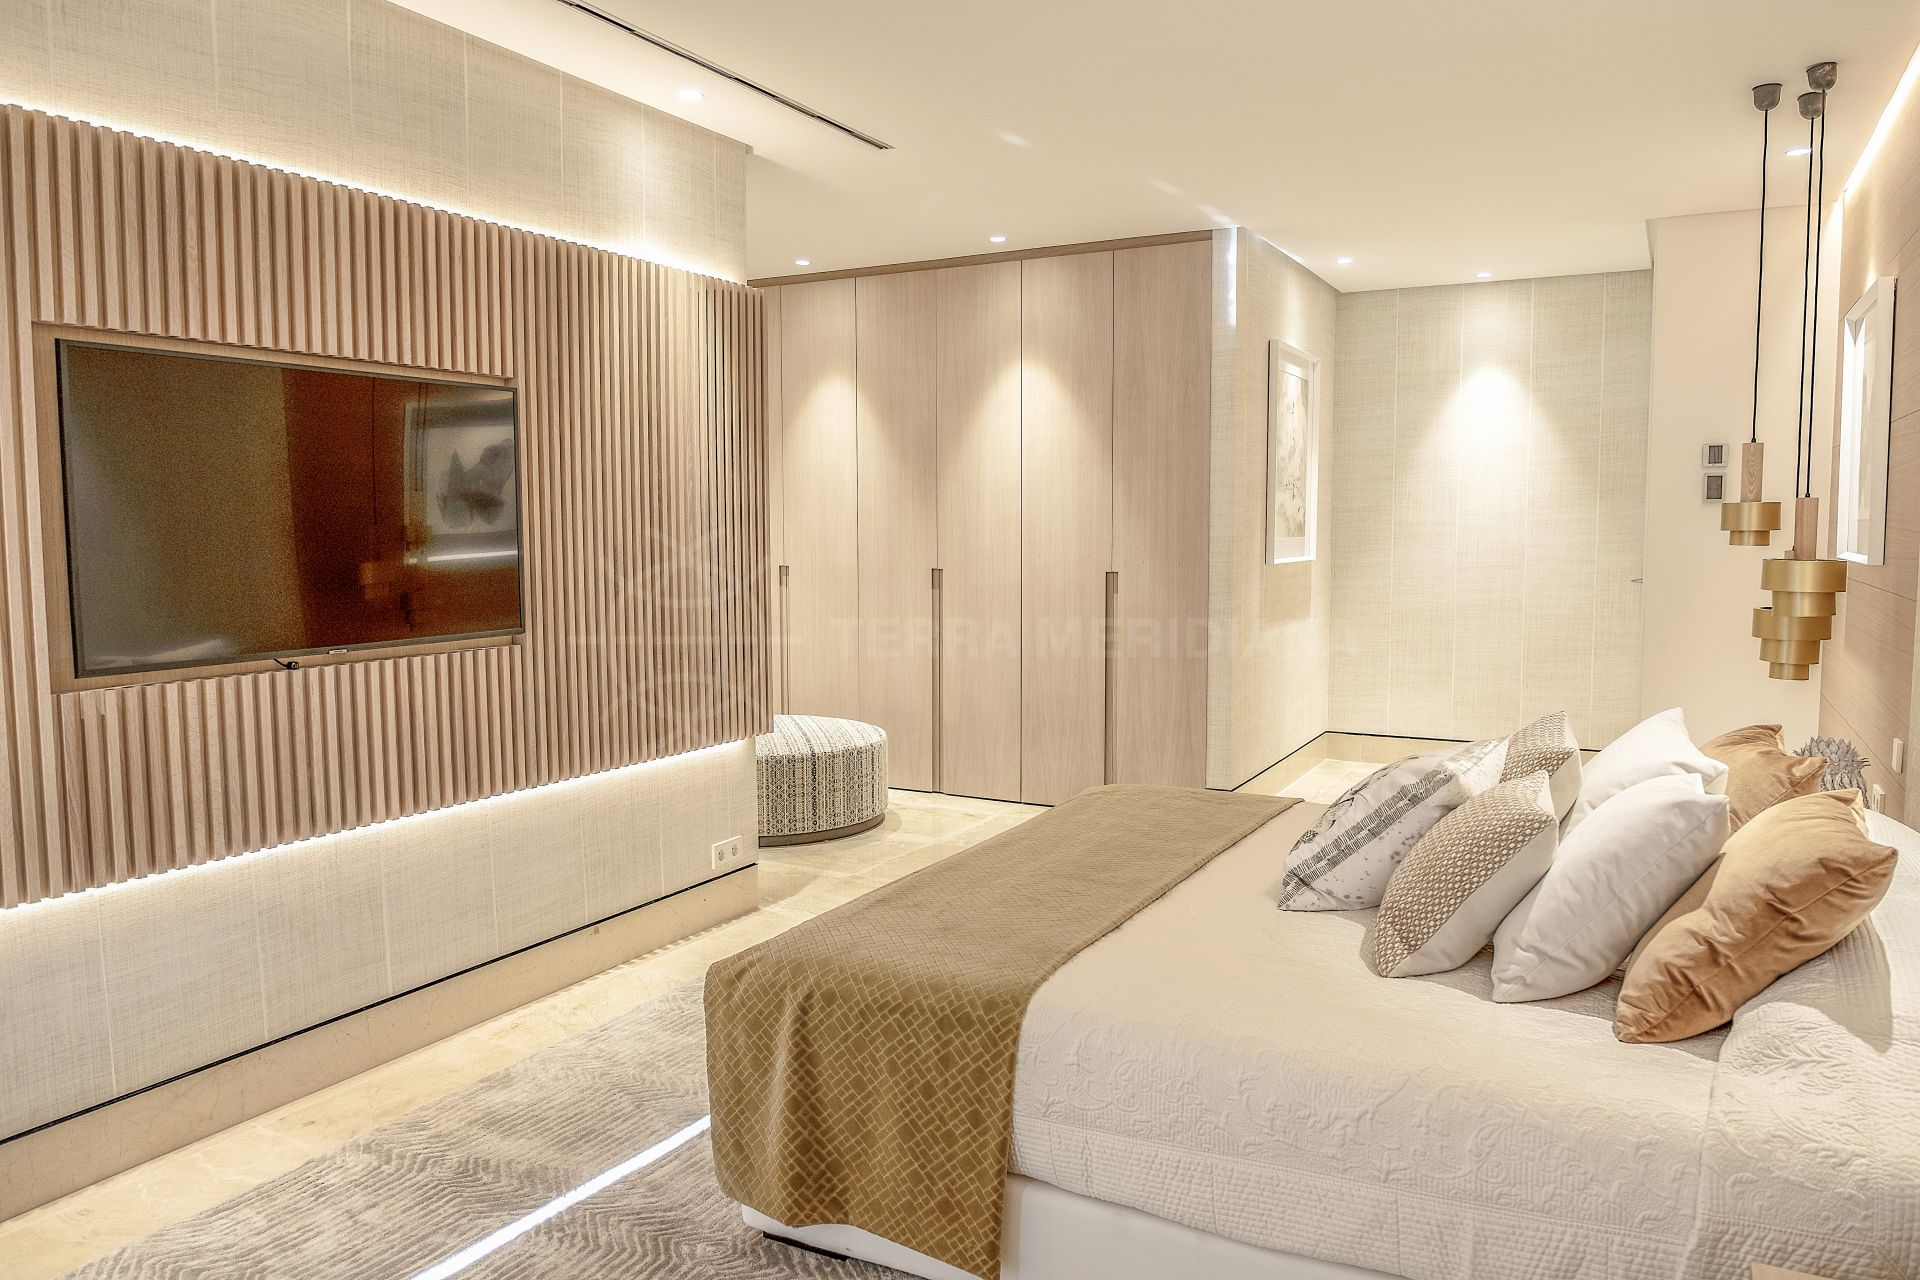 Beachfront 5th-floor luxurious apartment awash in natural light and